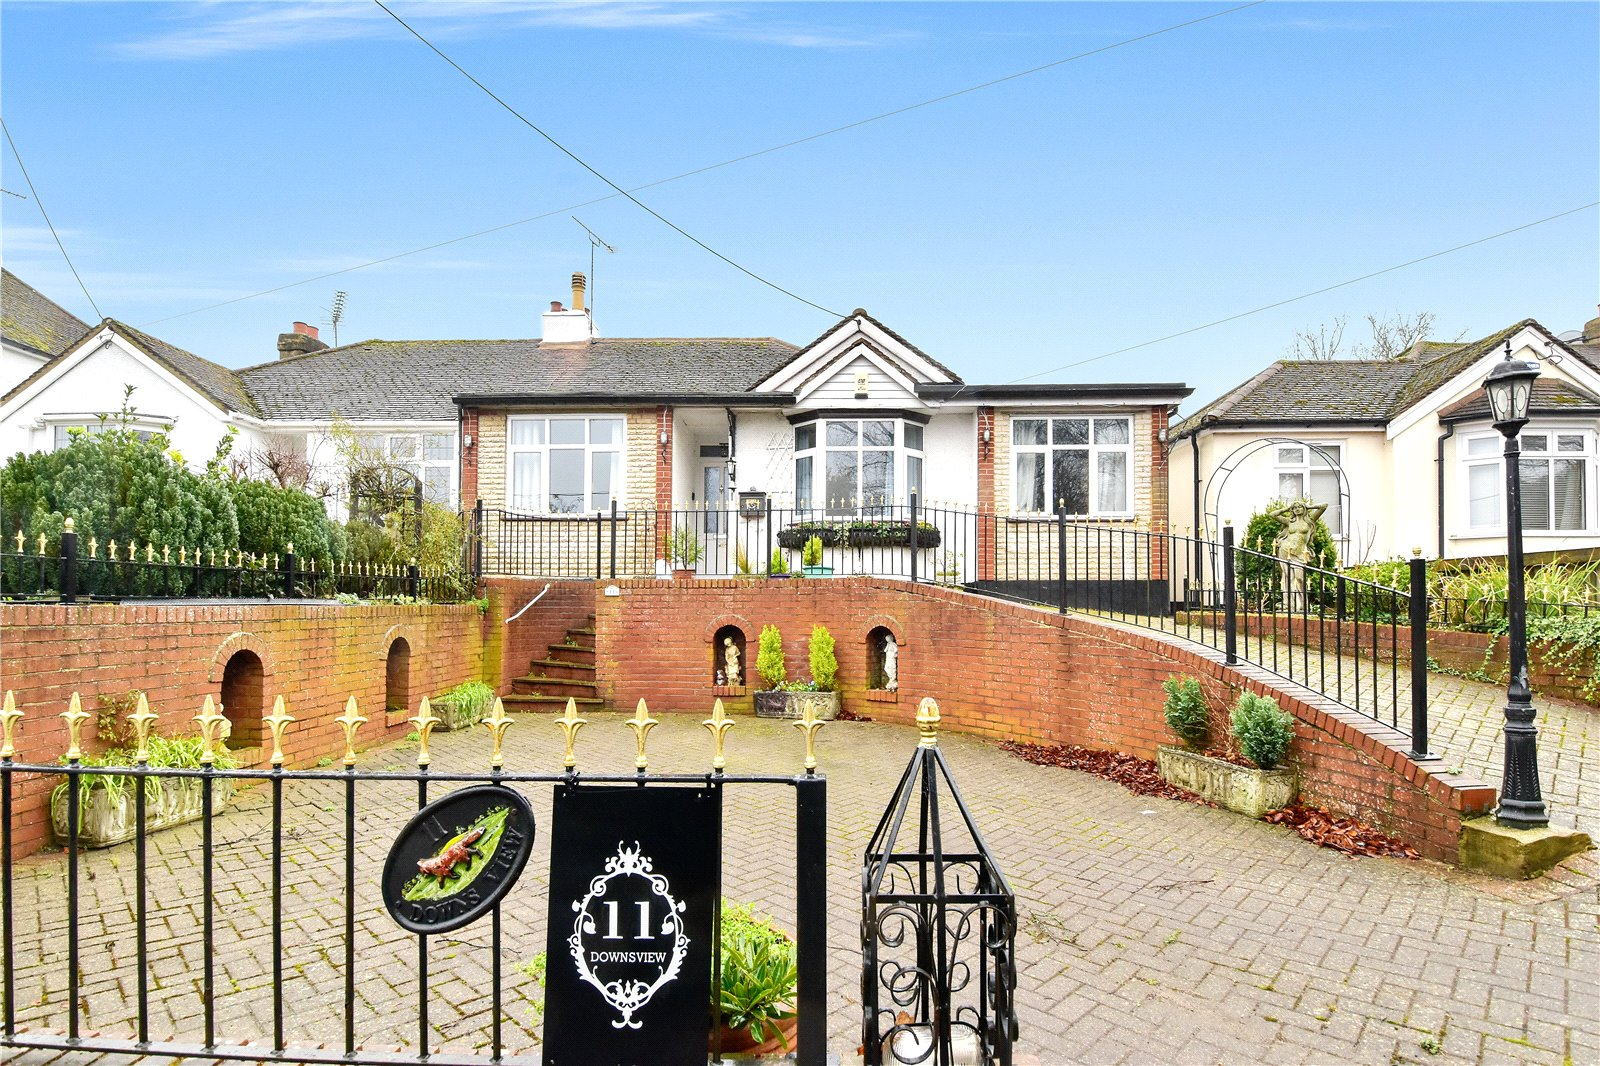 Ash Road, Hartley, Kent, DA3